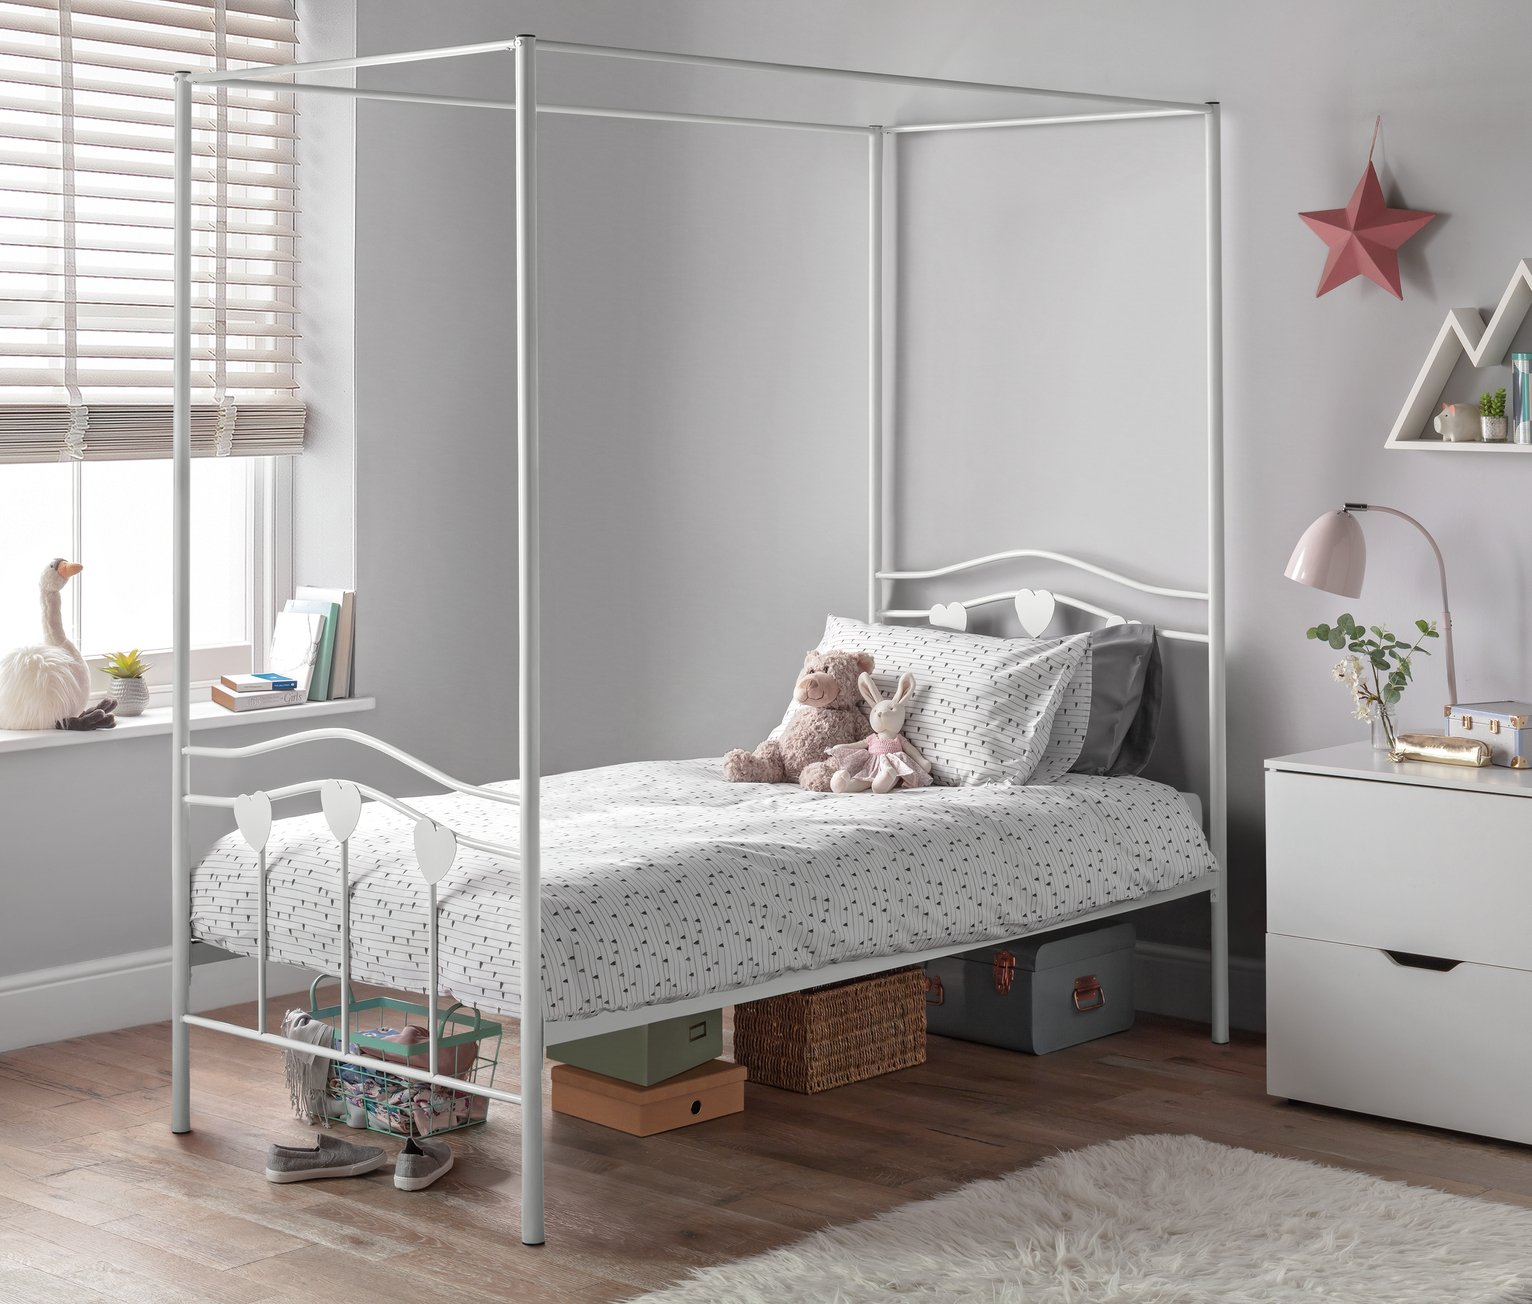 Argos Home Hearts Single 4 Poster Bed and Kids Mattress -Whi